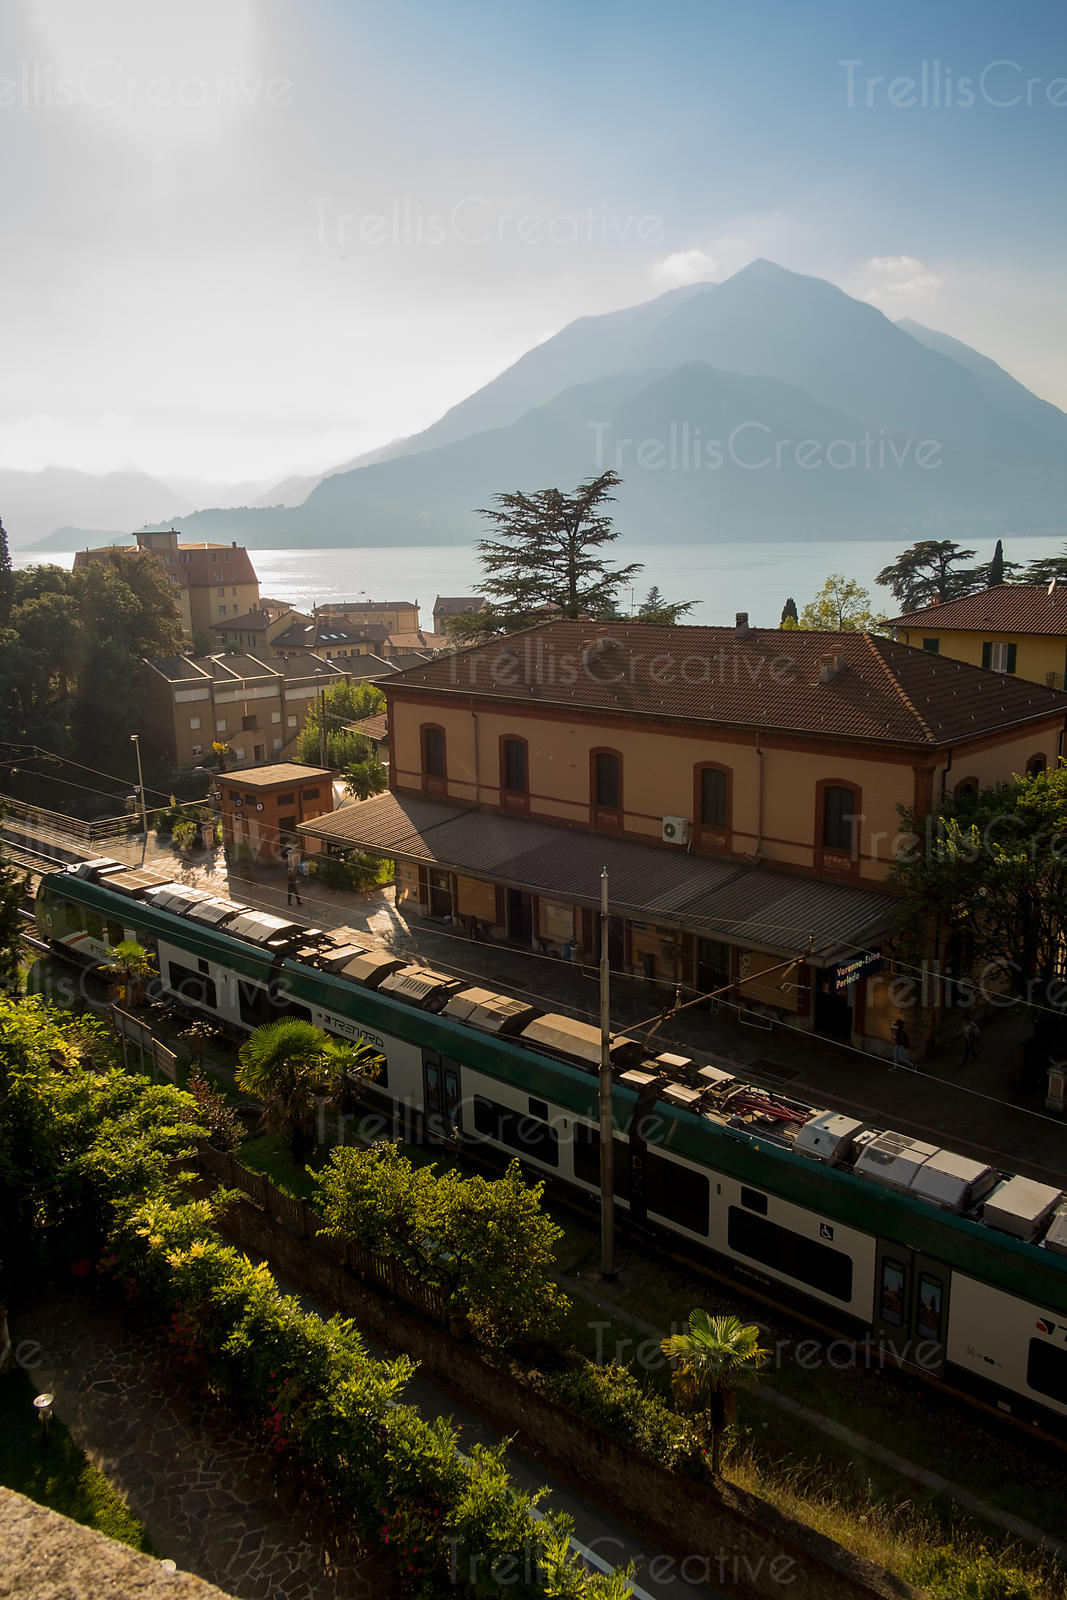 Train pulls into the station in Varenna, Italy